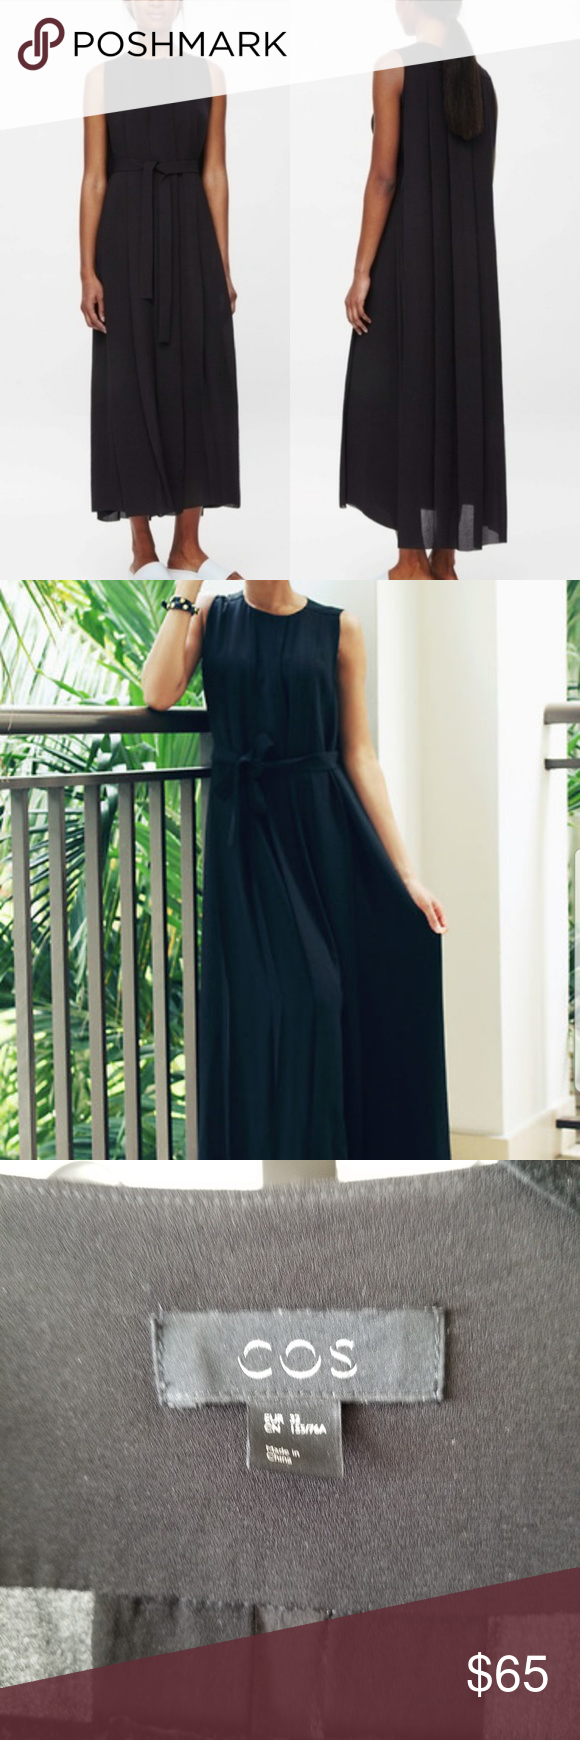 8e9fc9a0d4c Cos maxi pleated maxi dress Cos maxi pleated dress comes without belt. no  belt loops labeled a size 32 17.5 inches underarm to underarm 52 inches  long from ...